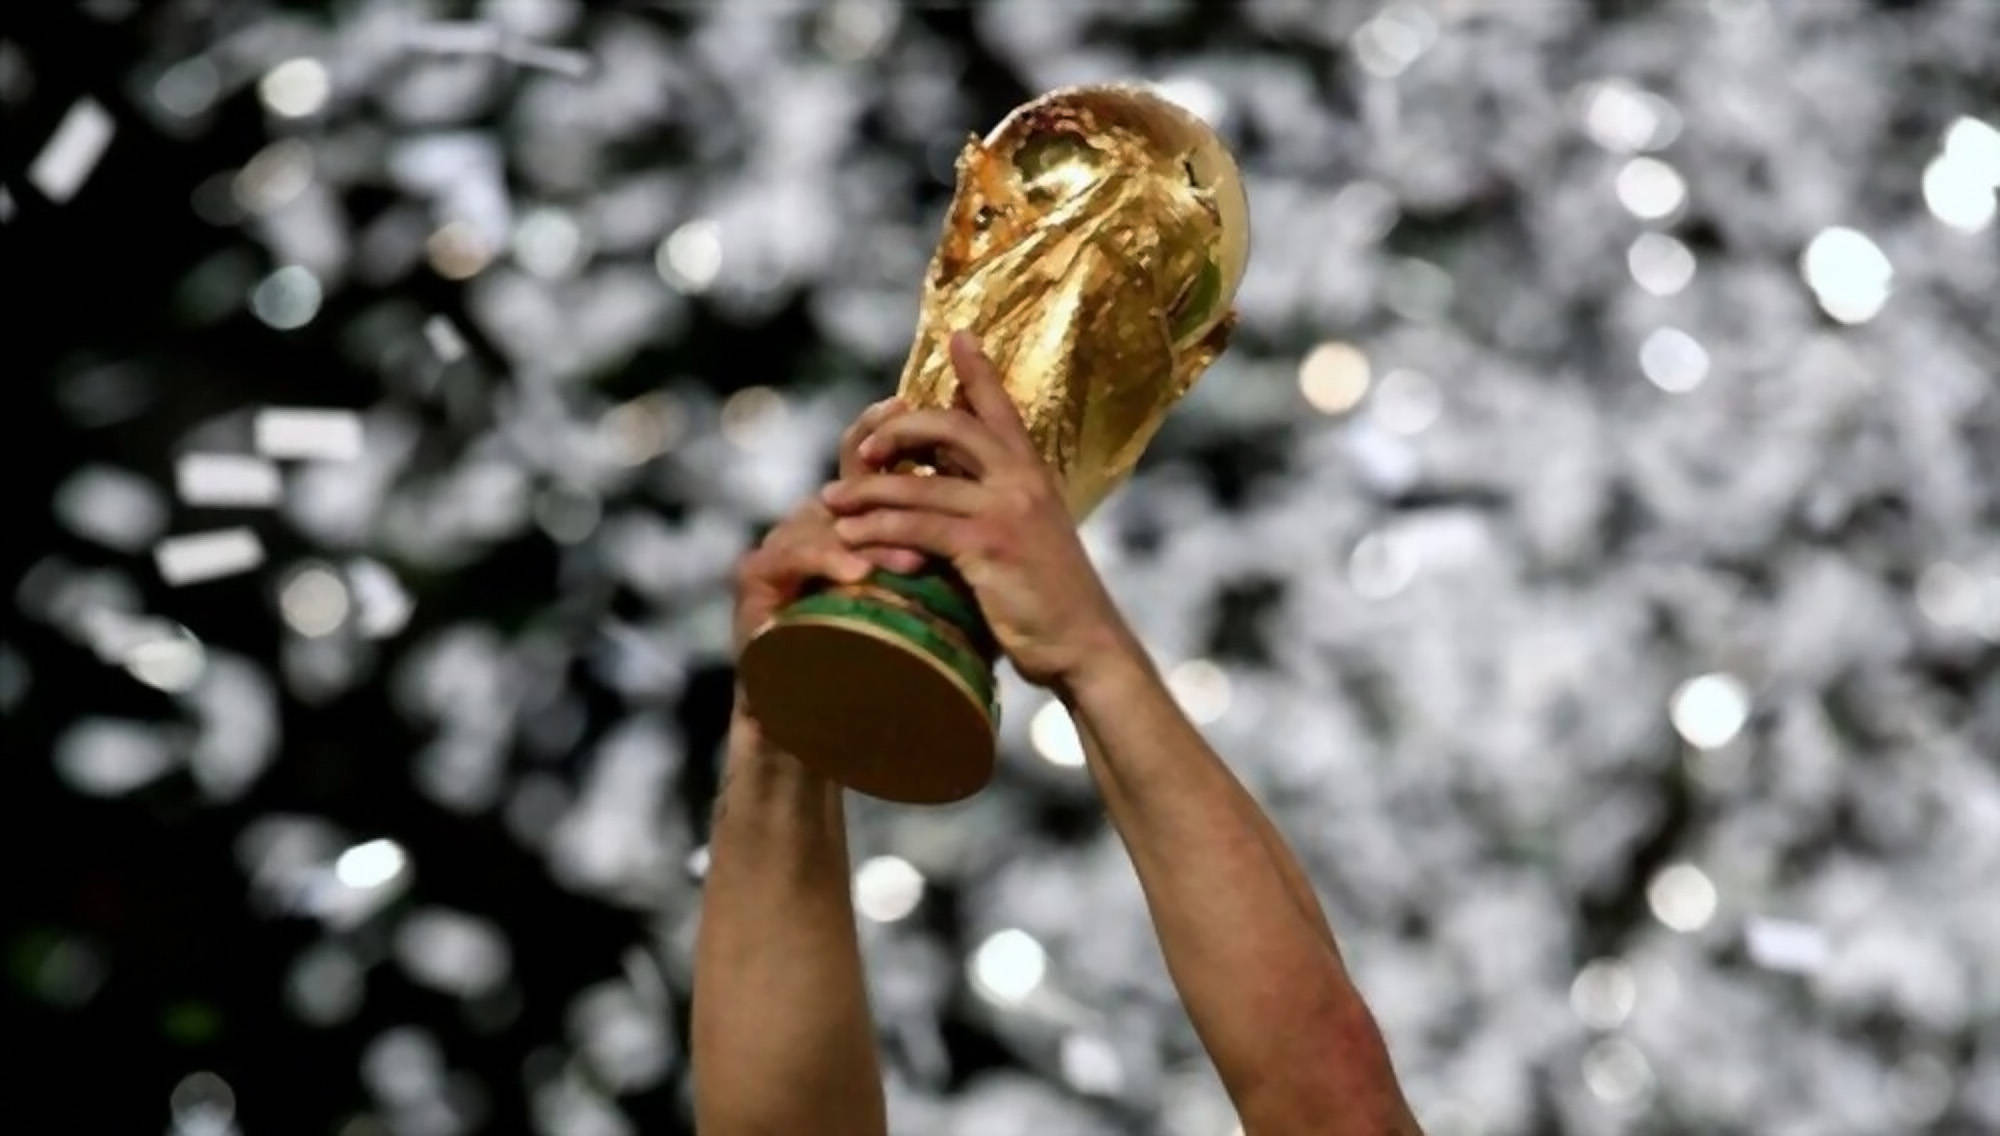 fifa-world-cup-2022-holding-trophy-celebration-beginners-guide-sports-betting-singapore-content-image